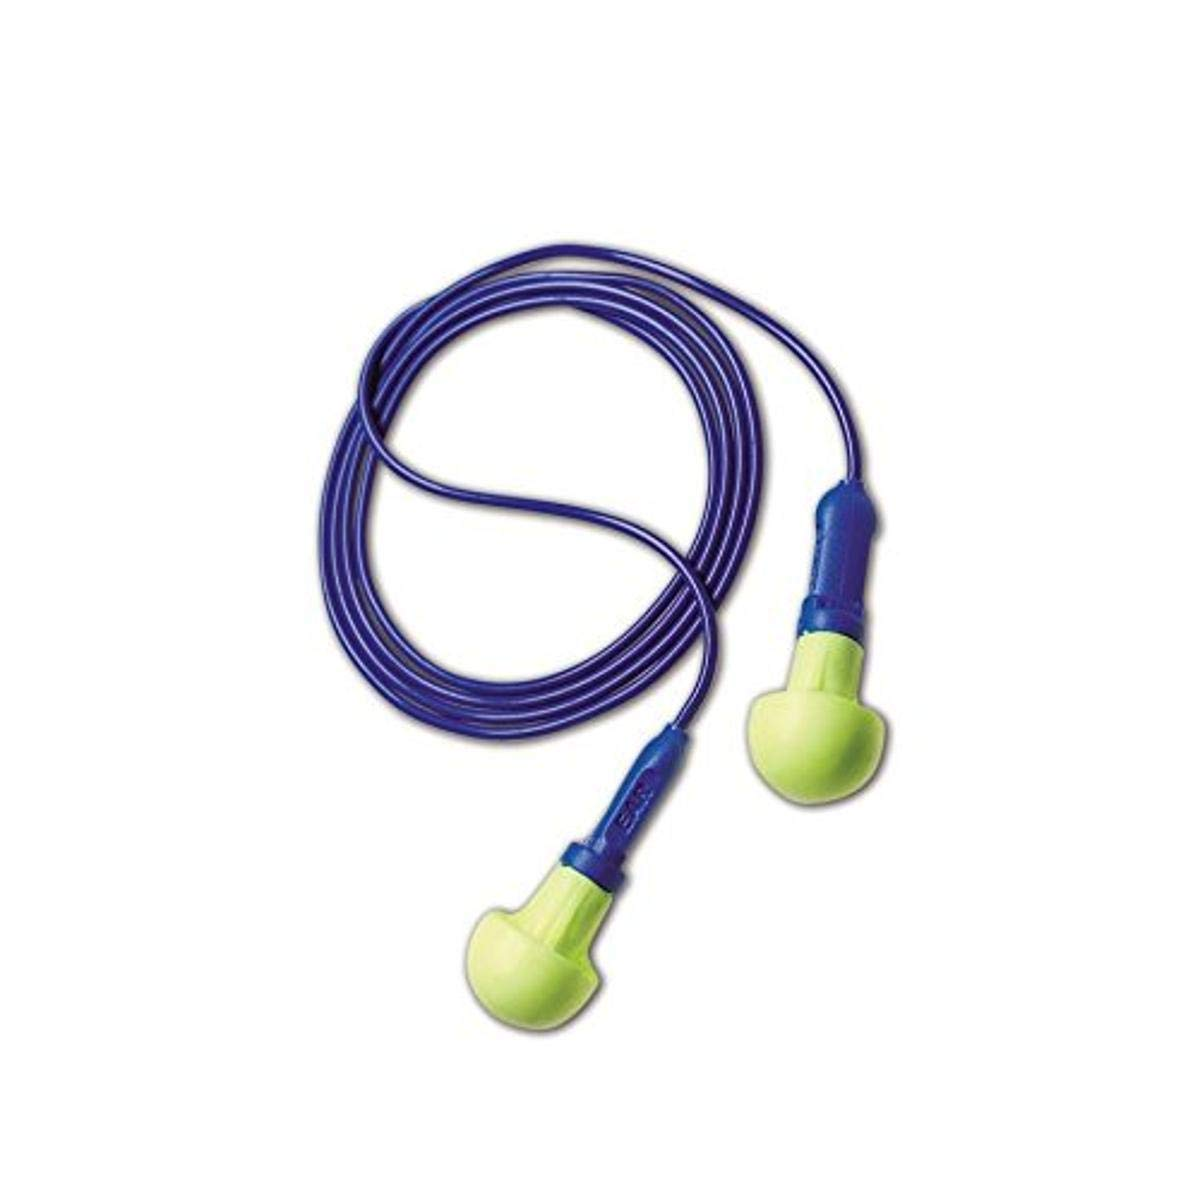 3M Award E-A-R Push-Ins Earplugs 318-1003 Bag of Corded Poly 2021 autumn and winter new Pack